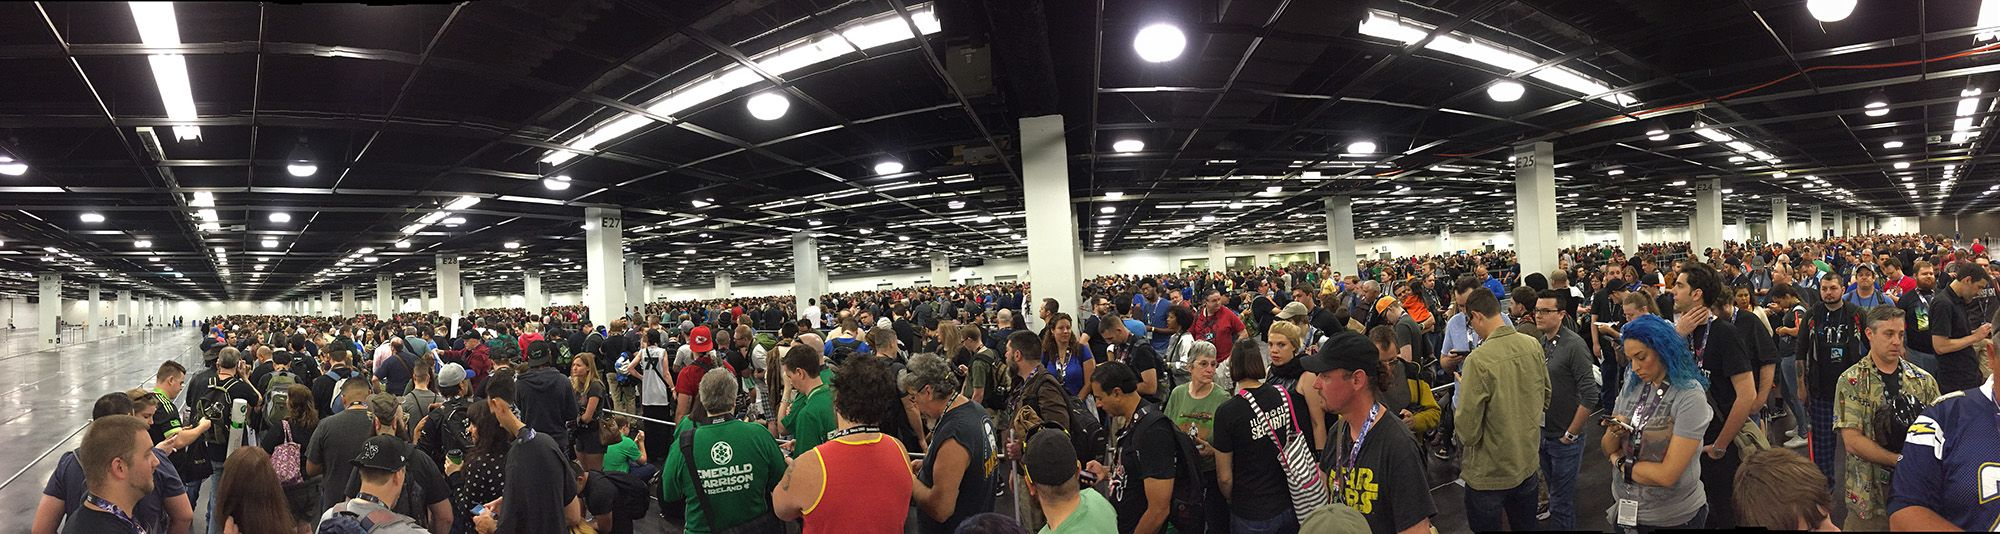 Star Wars Celebration: una panoramica sul pubblico